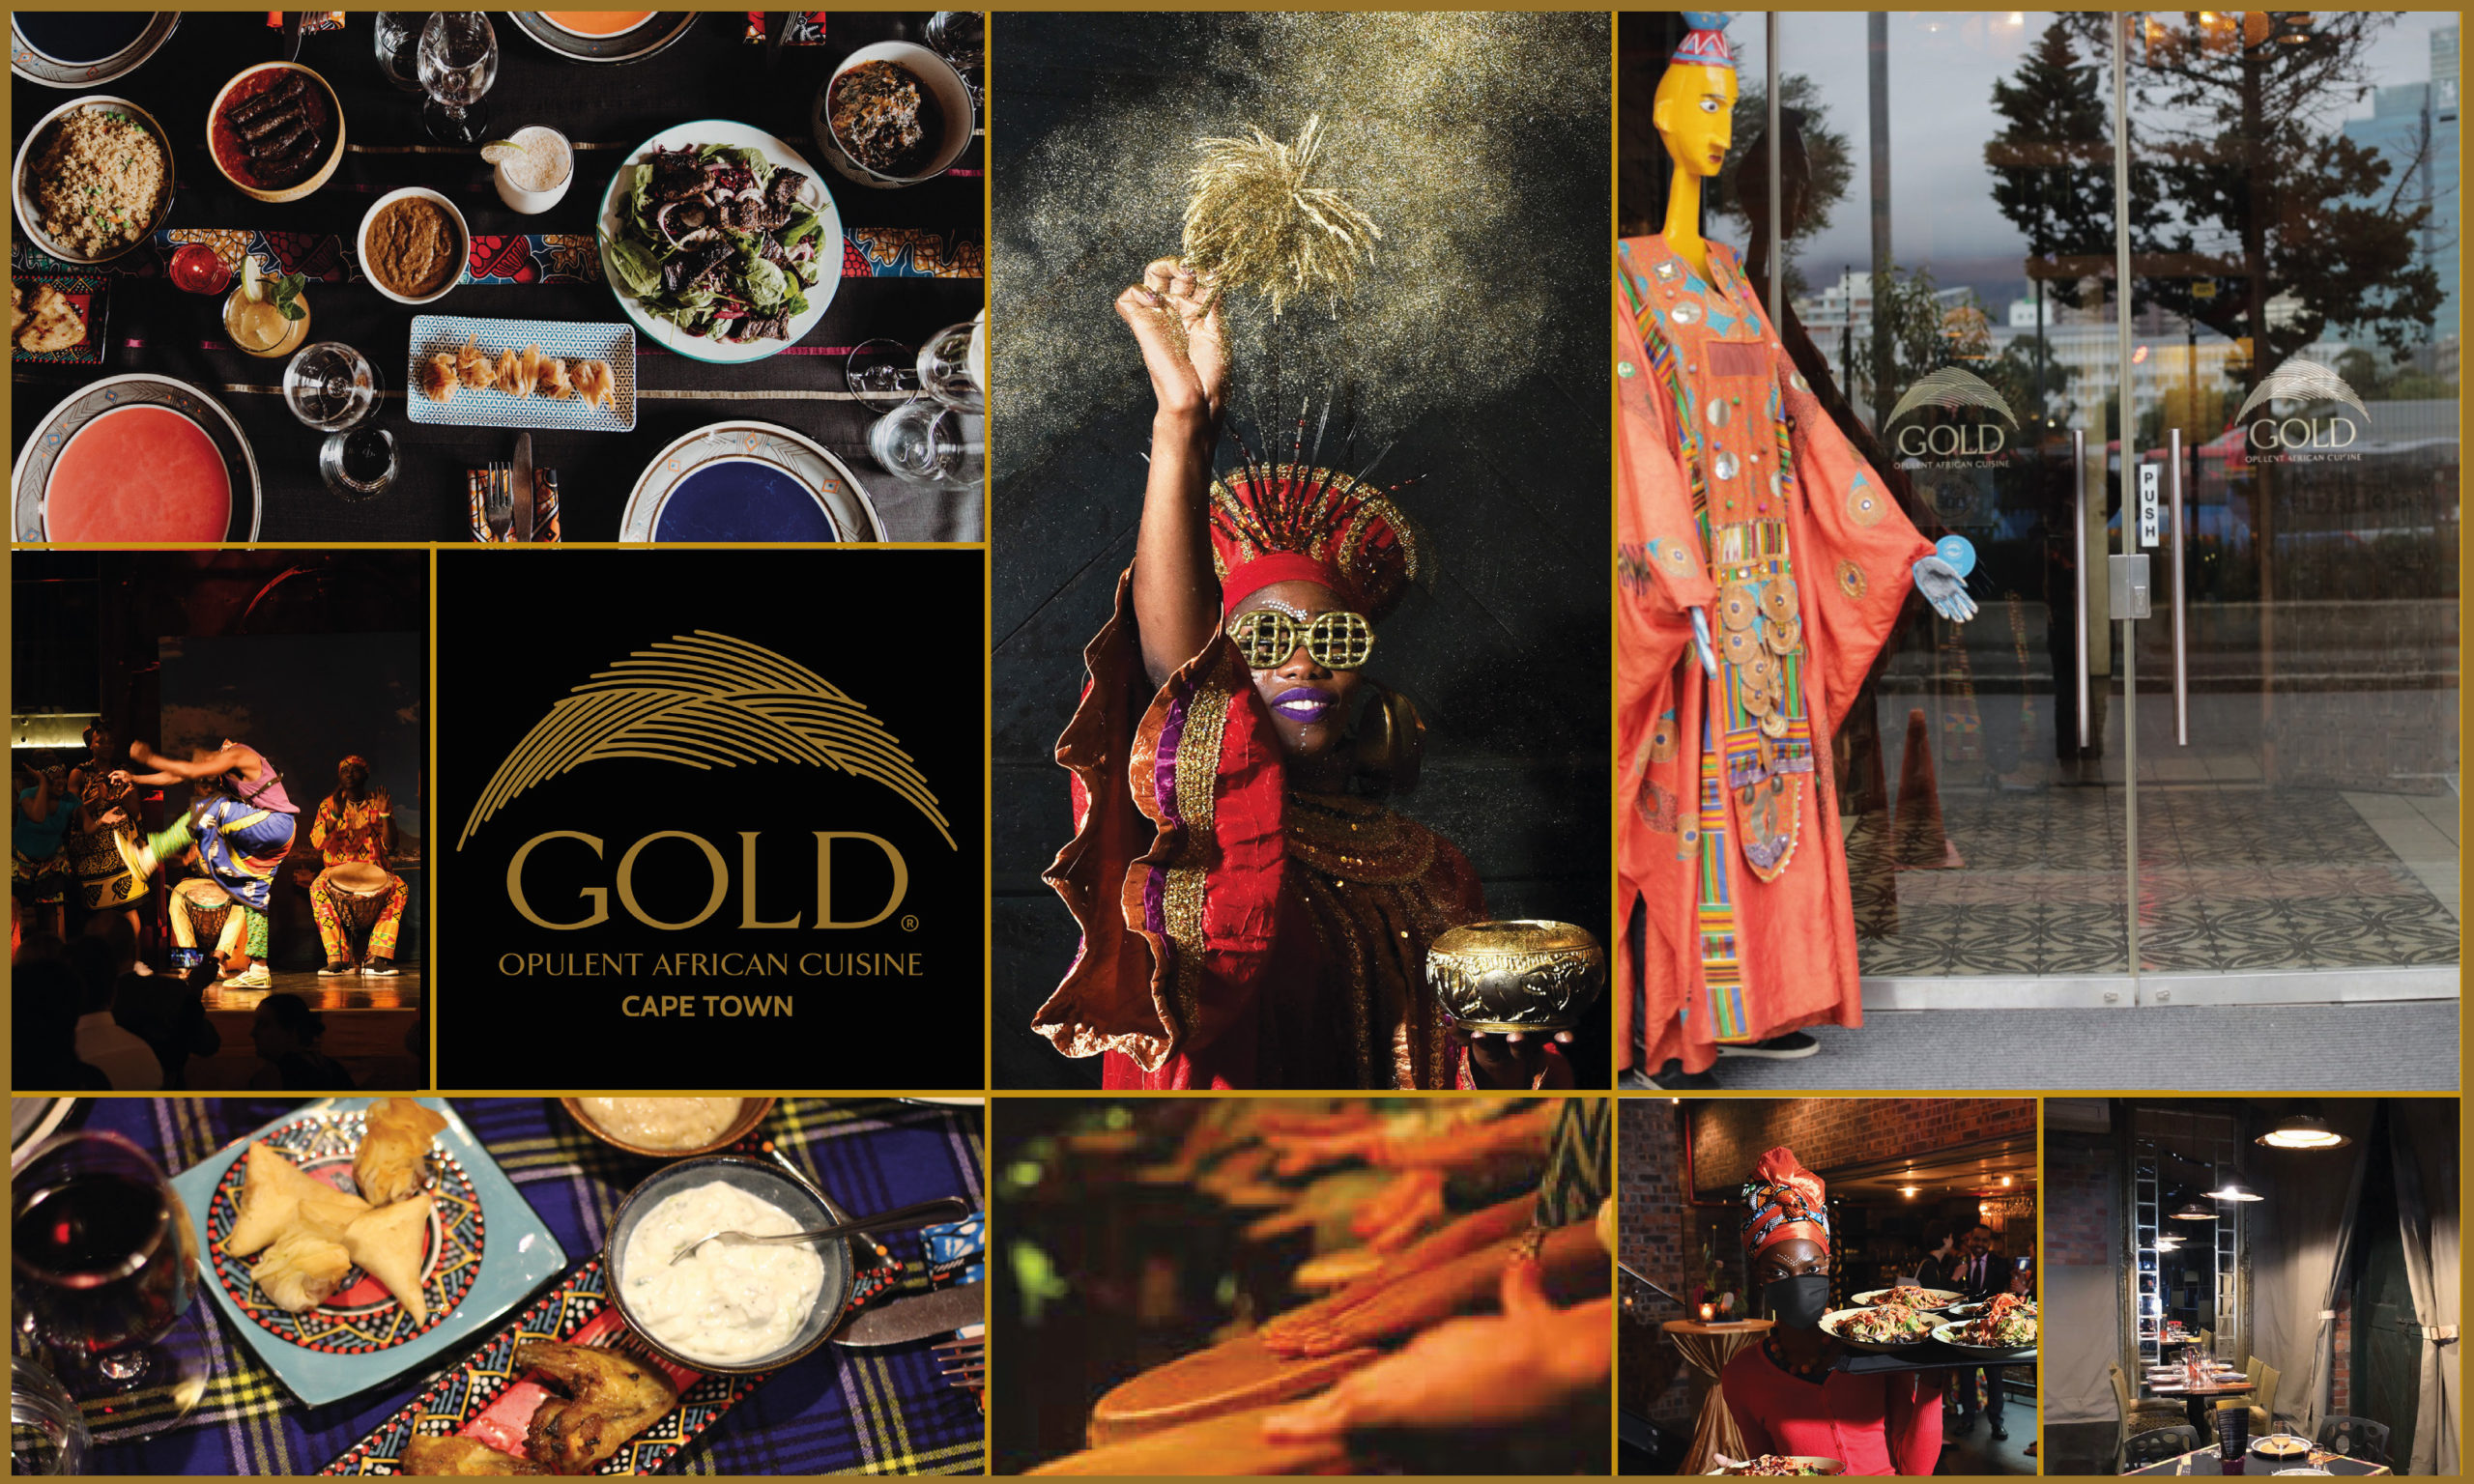 GOLD Restaurant Collage